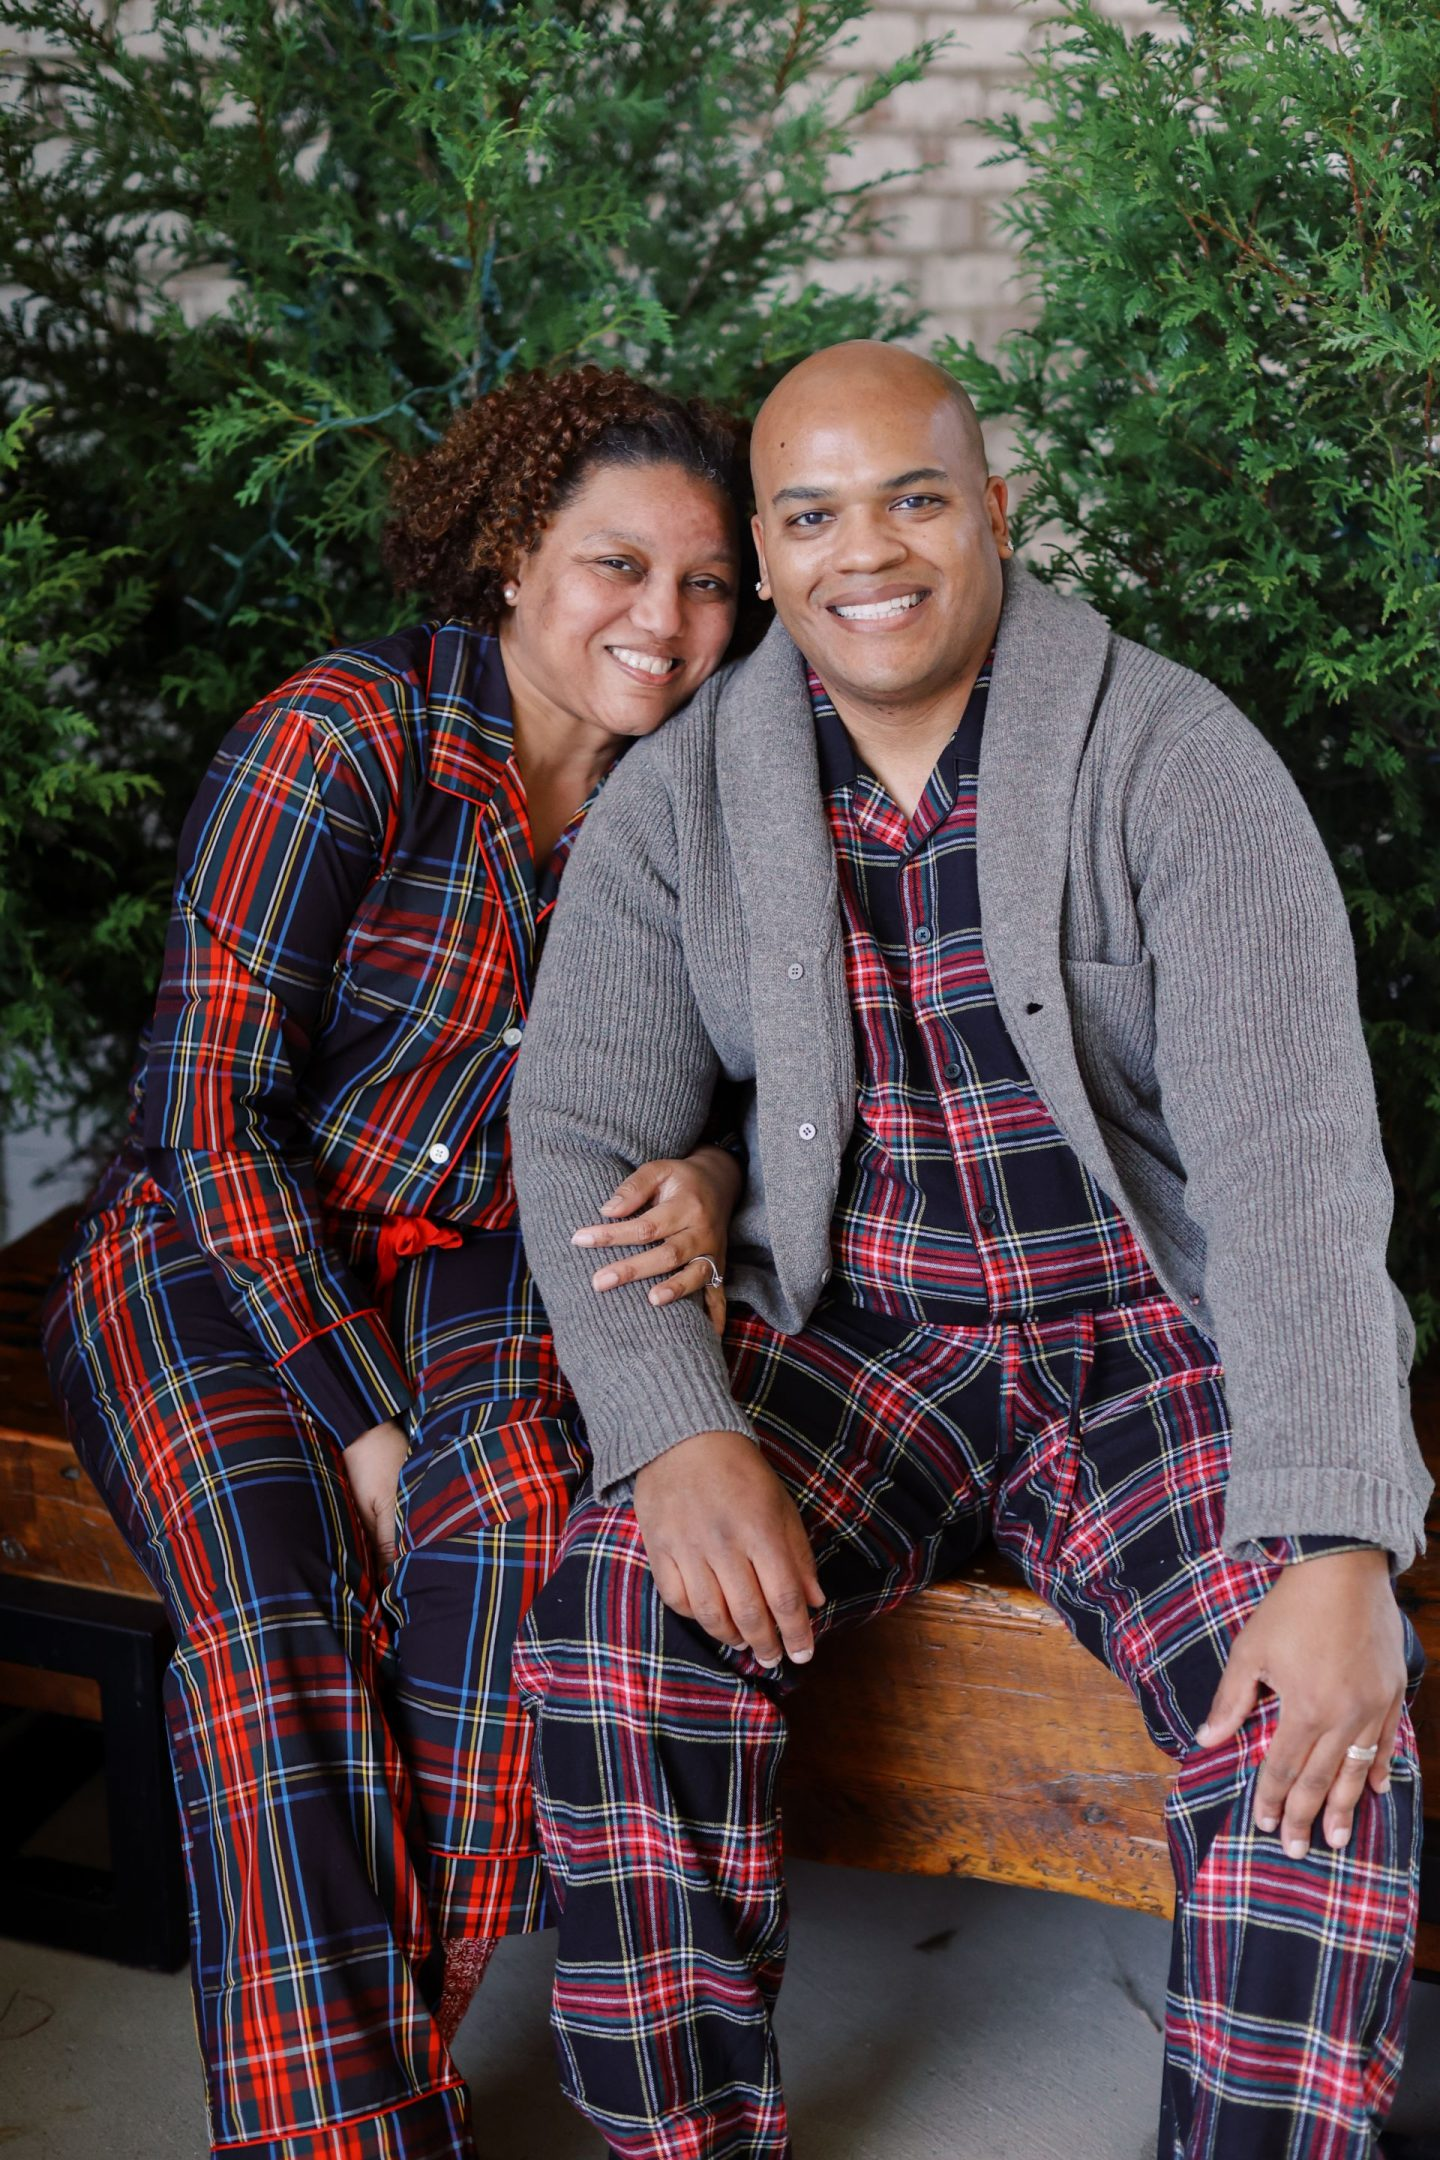 J Crew Pajamas by popular Kentucky fashion blog, Really Rynetta: image of a man and woman sitting next to each next to some pine trees and wearing a J Crew Vintage pajama set in Stewart tartan.